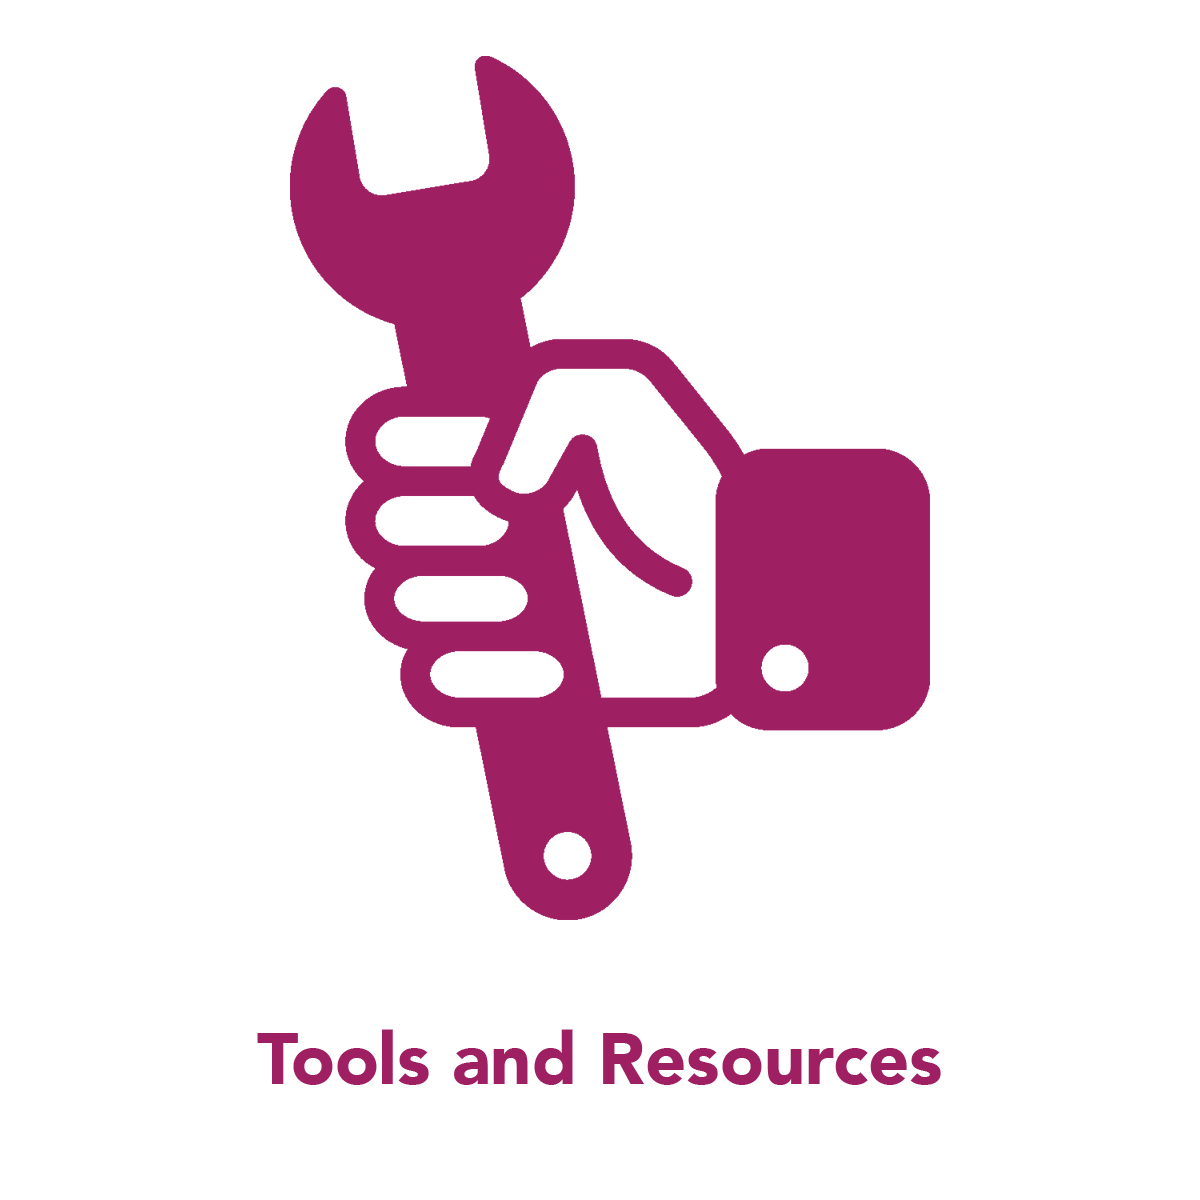 tools-resources-4.png